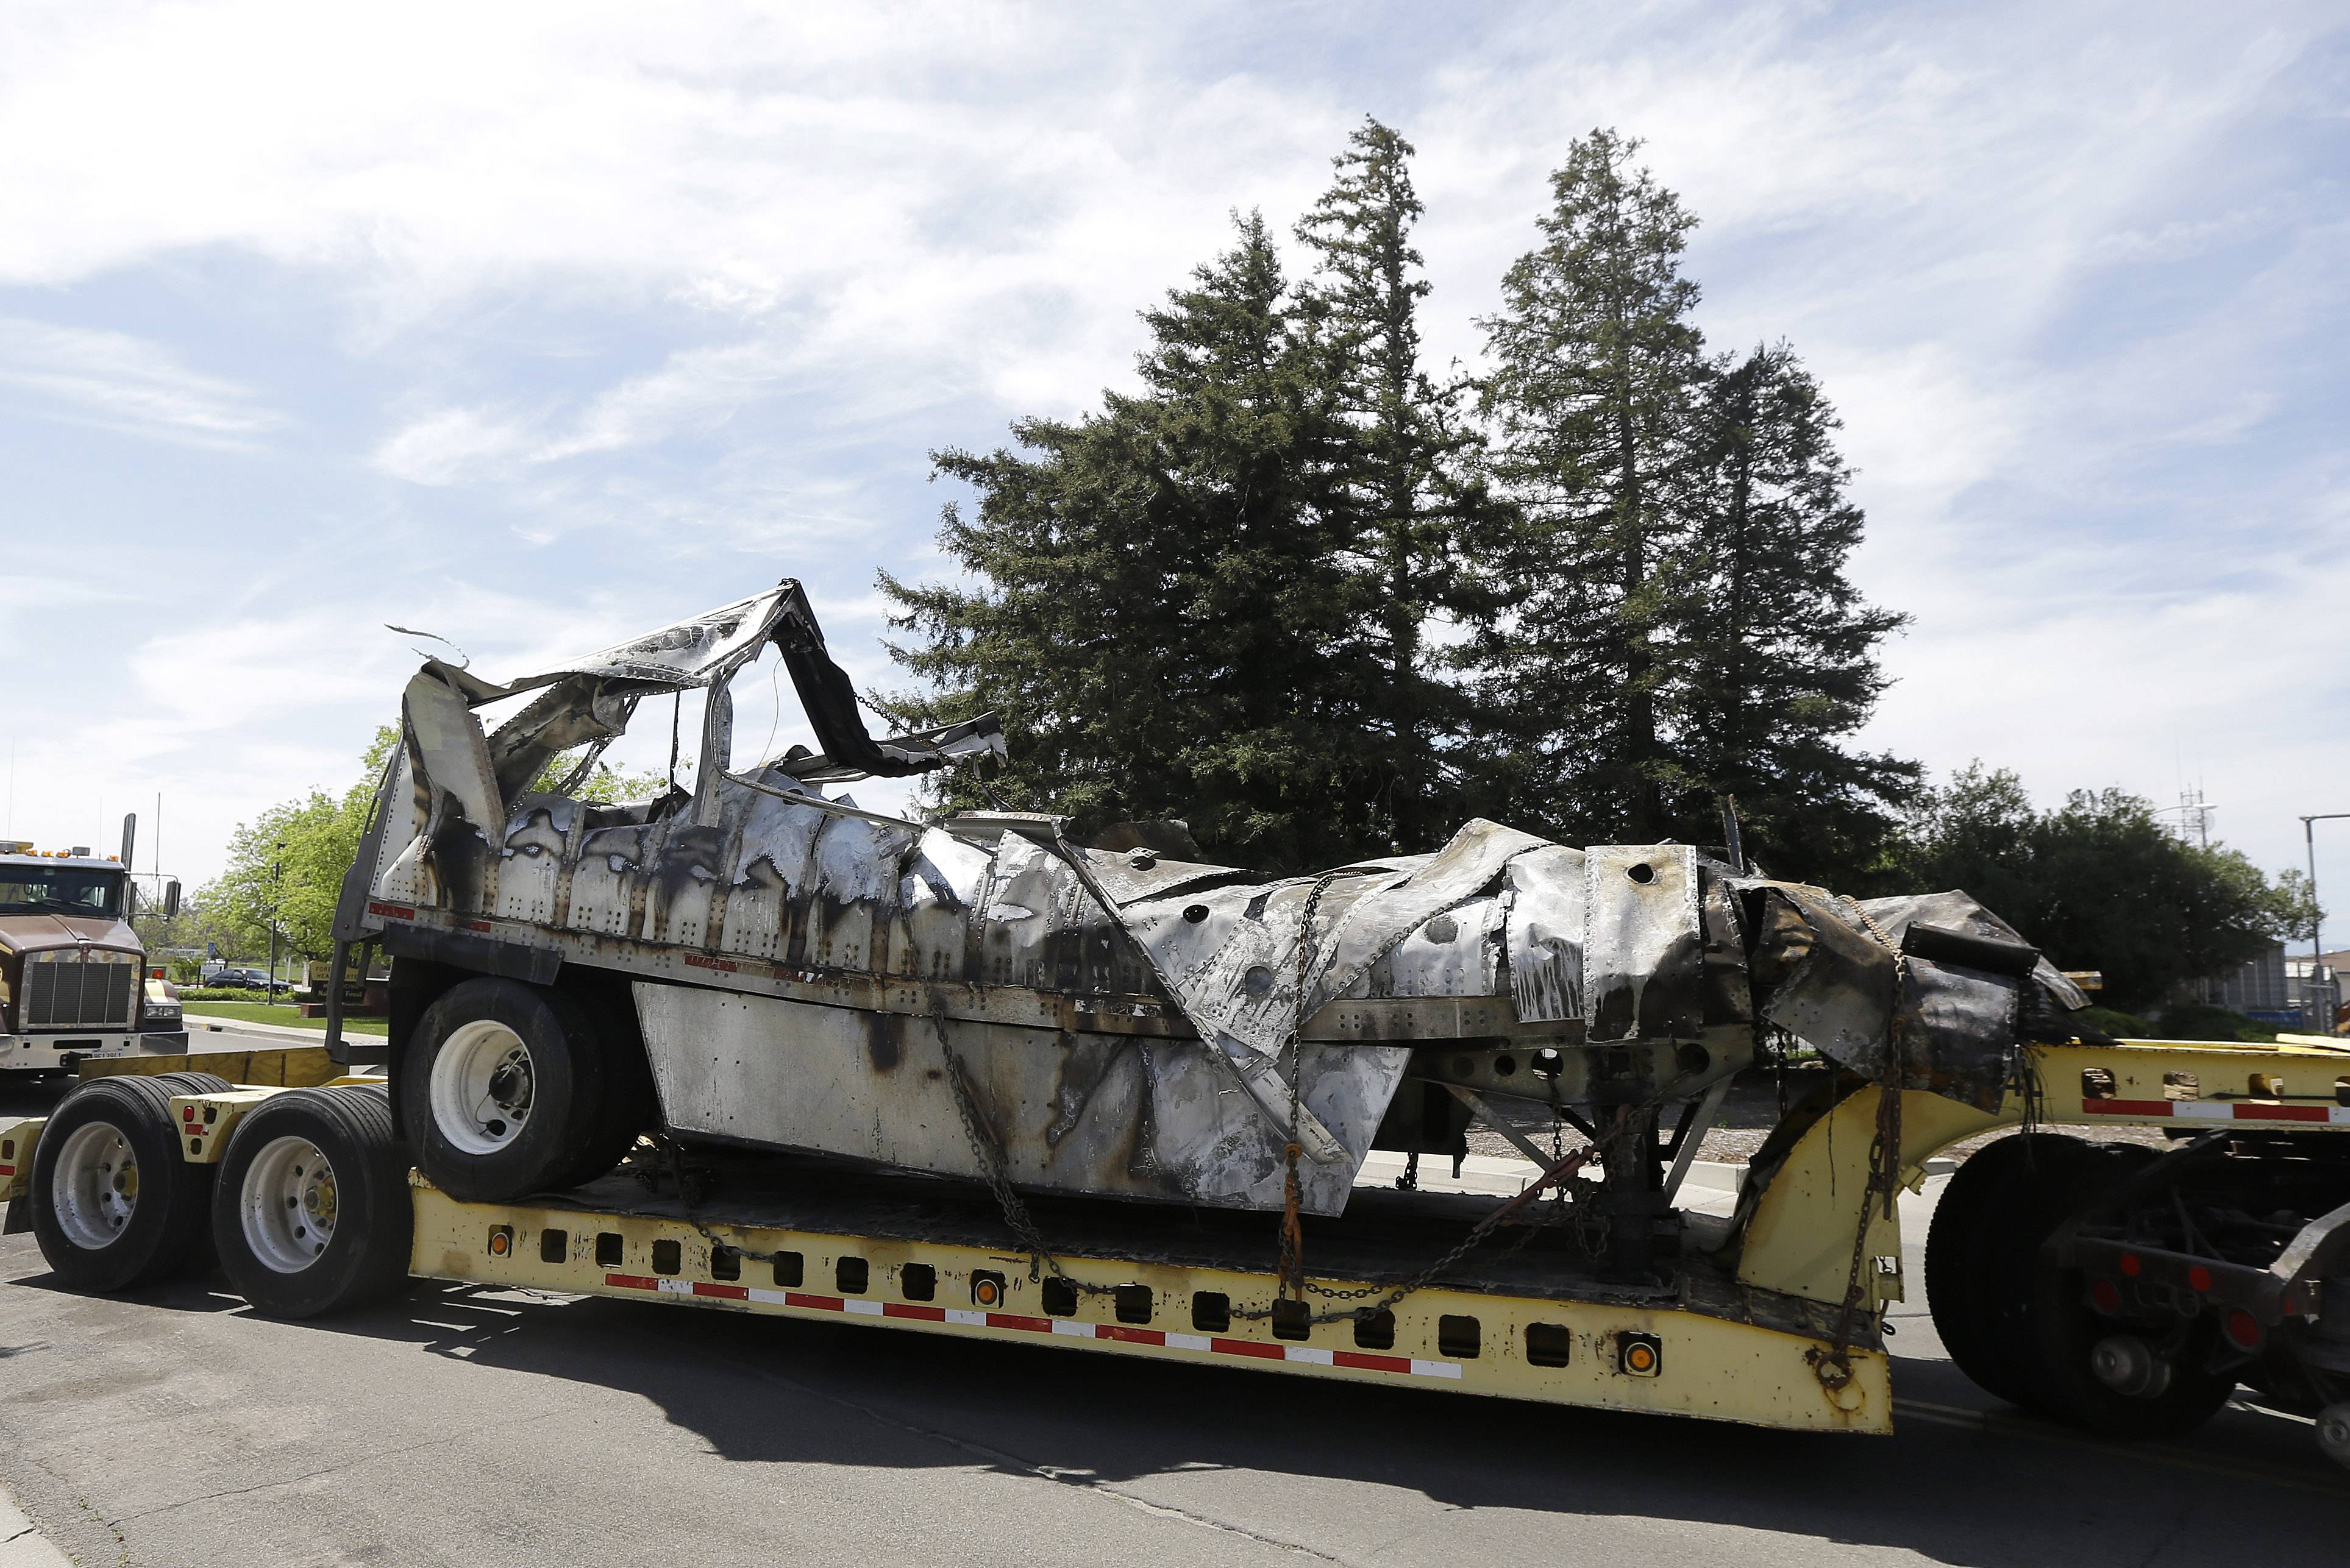 The demolished remains of a FedEx truck are towed Friday into a CalTrans maintenance station in Willows, Calif. At least ten people were killed and dozens injured in the fiery crash on Thursday between a FedEx truck and a bus carrying high school students on a visit to a Northern California college.